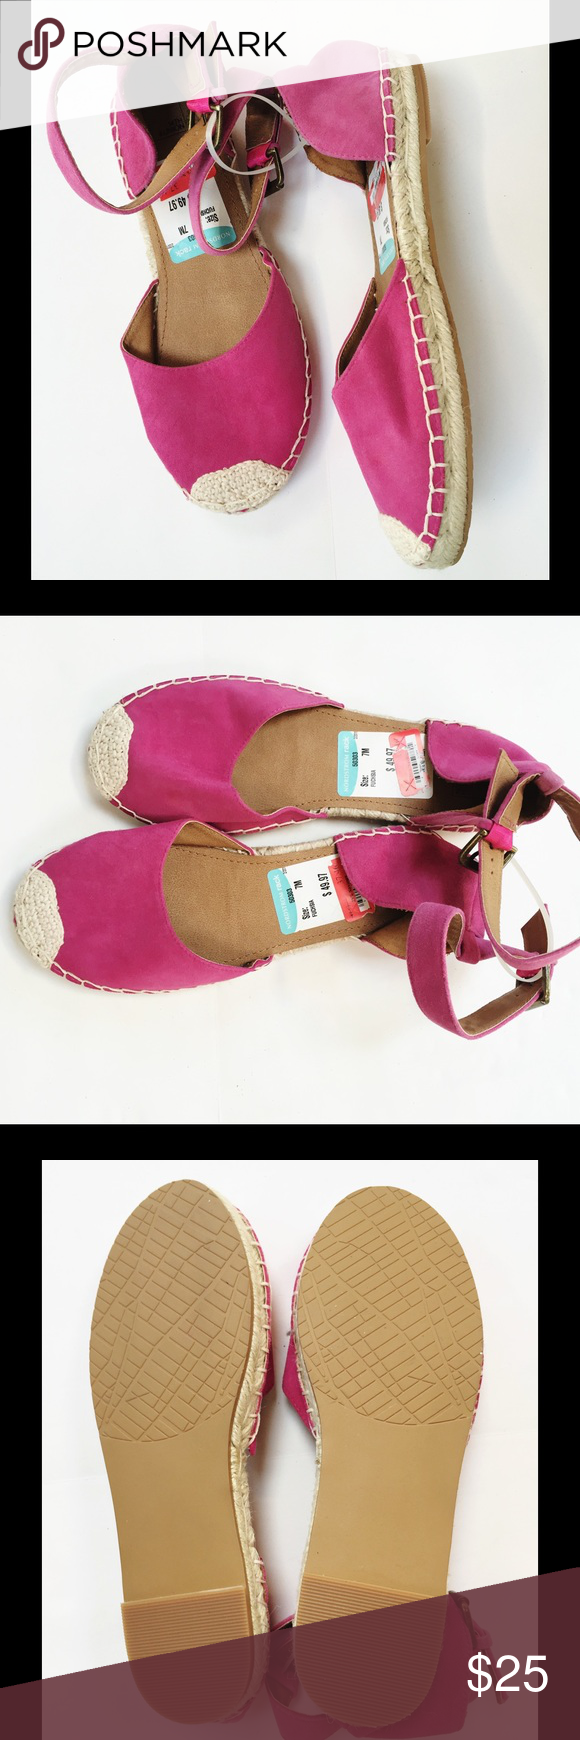 NWT Fuchsia Espadrille Flats Brand new from Nordstrom Rack. Super comfortable. Soft suede-like material. *All items from a smoke- and pet-free home. Bundle for additional savings! Nordstrom Shoes Flats & Loafers